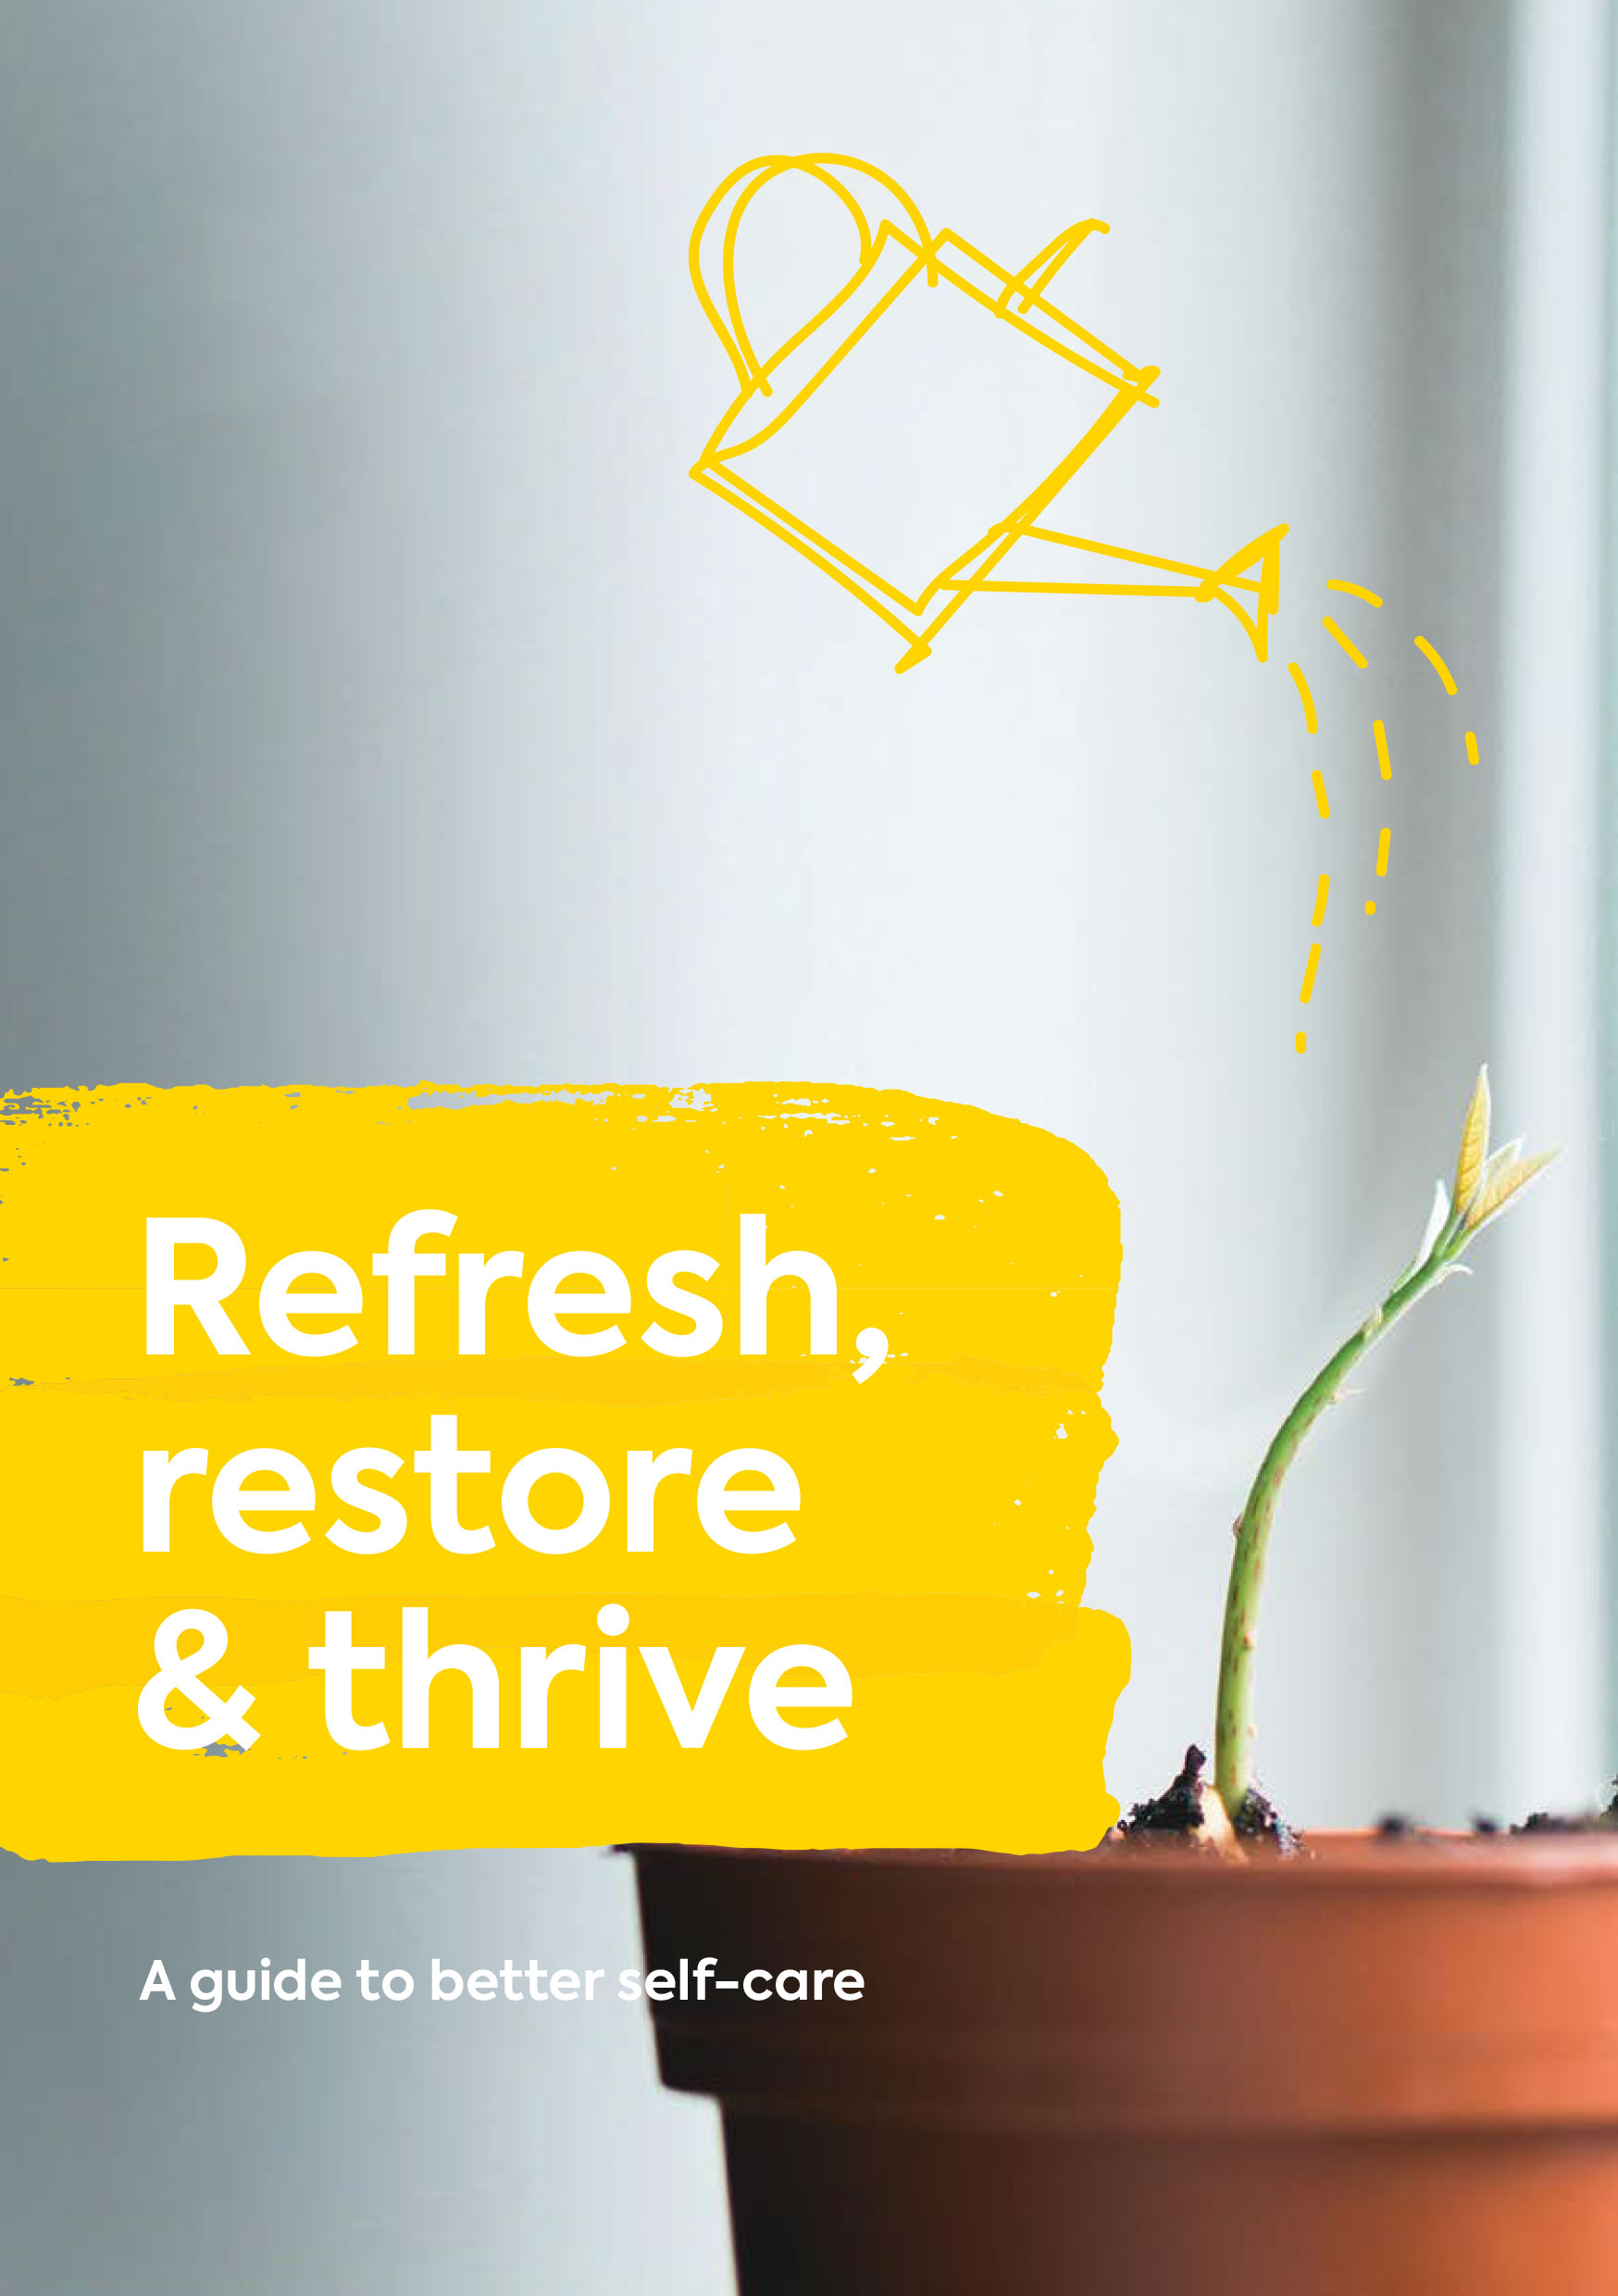 Refresh, restore & thrive: A guide to better self-care